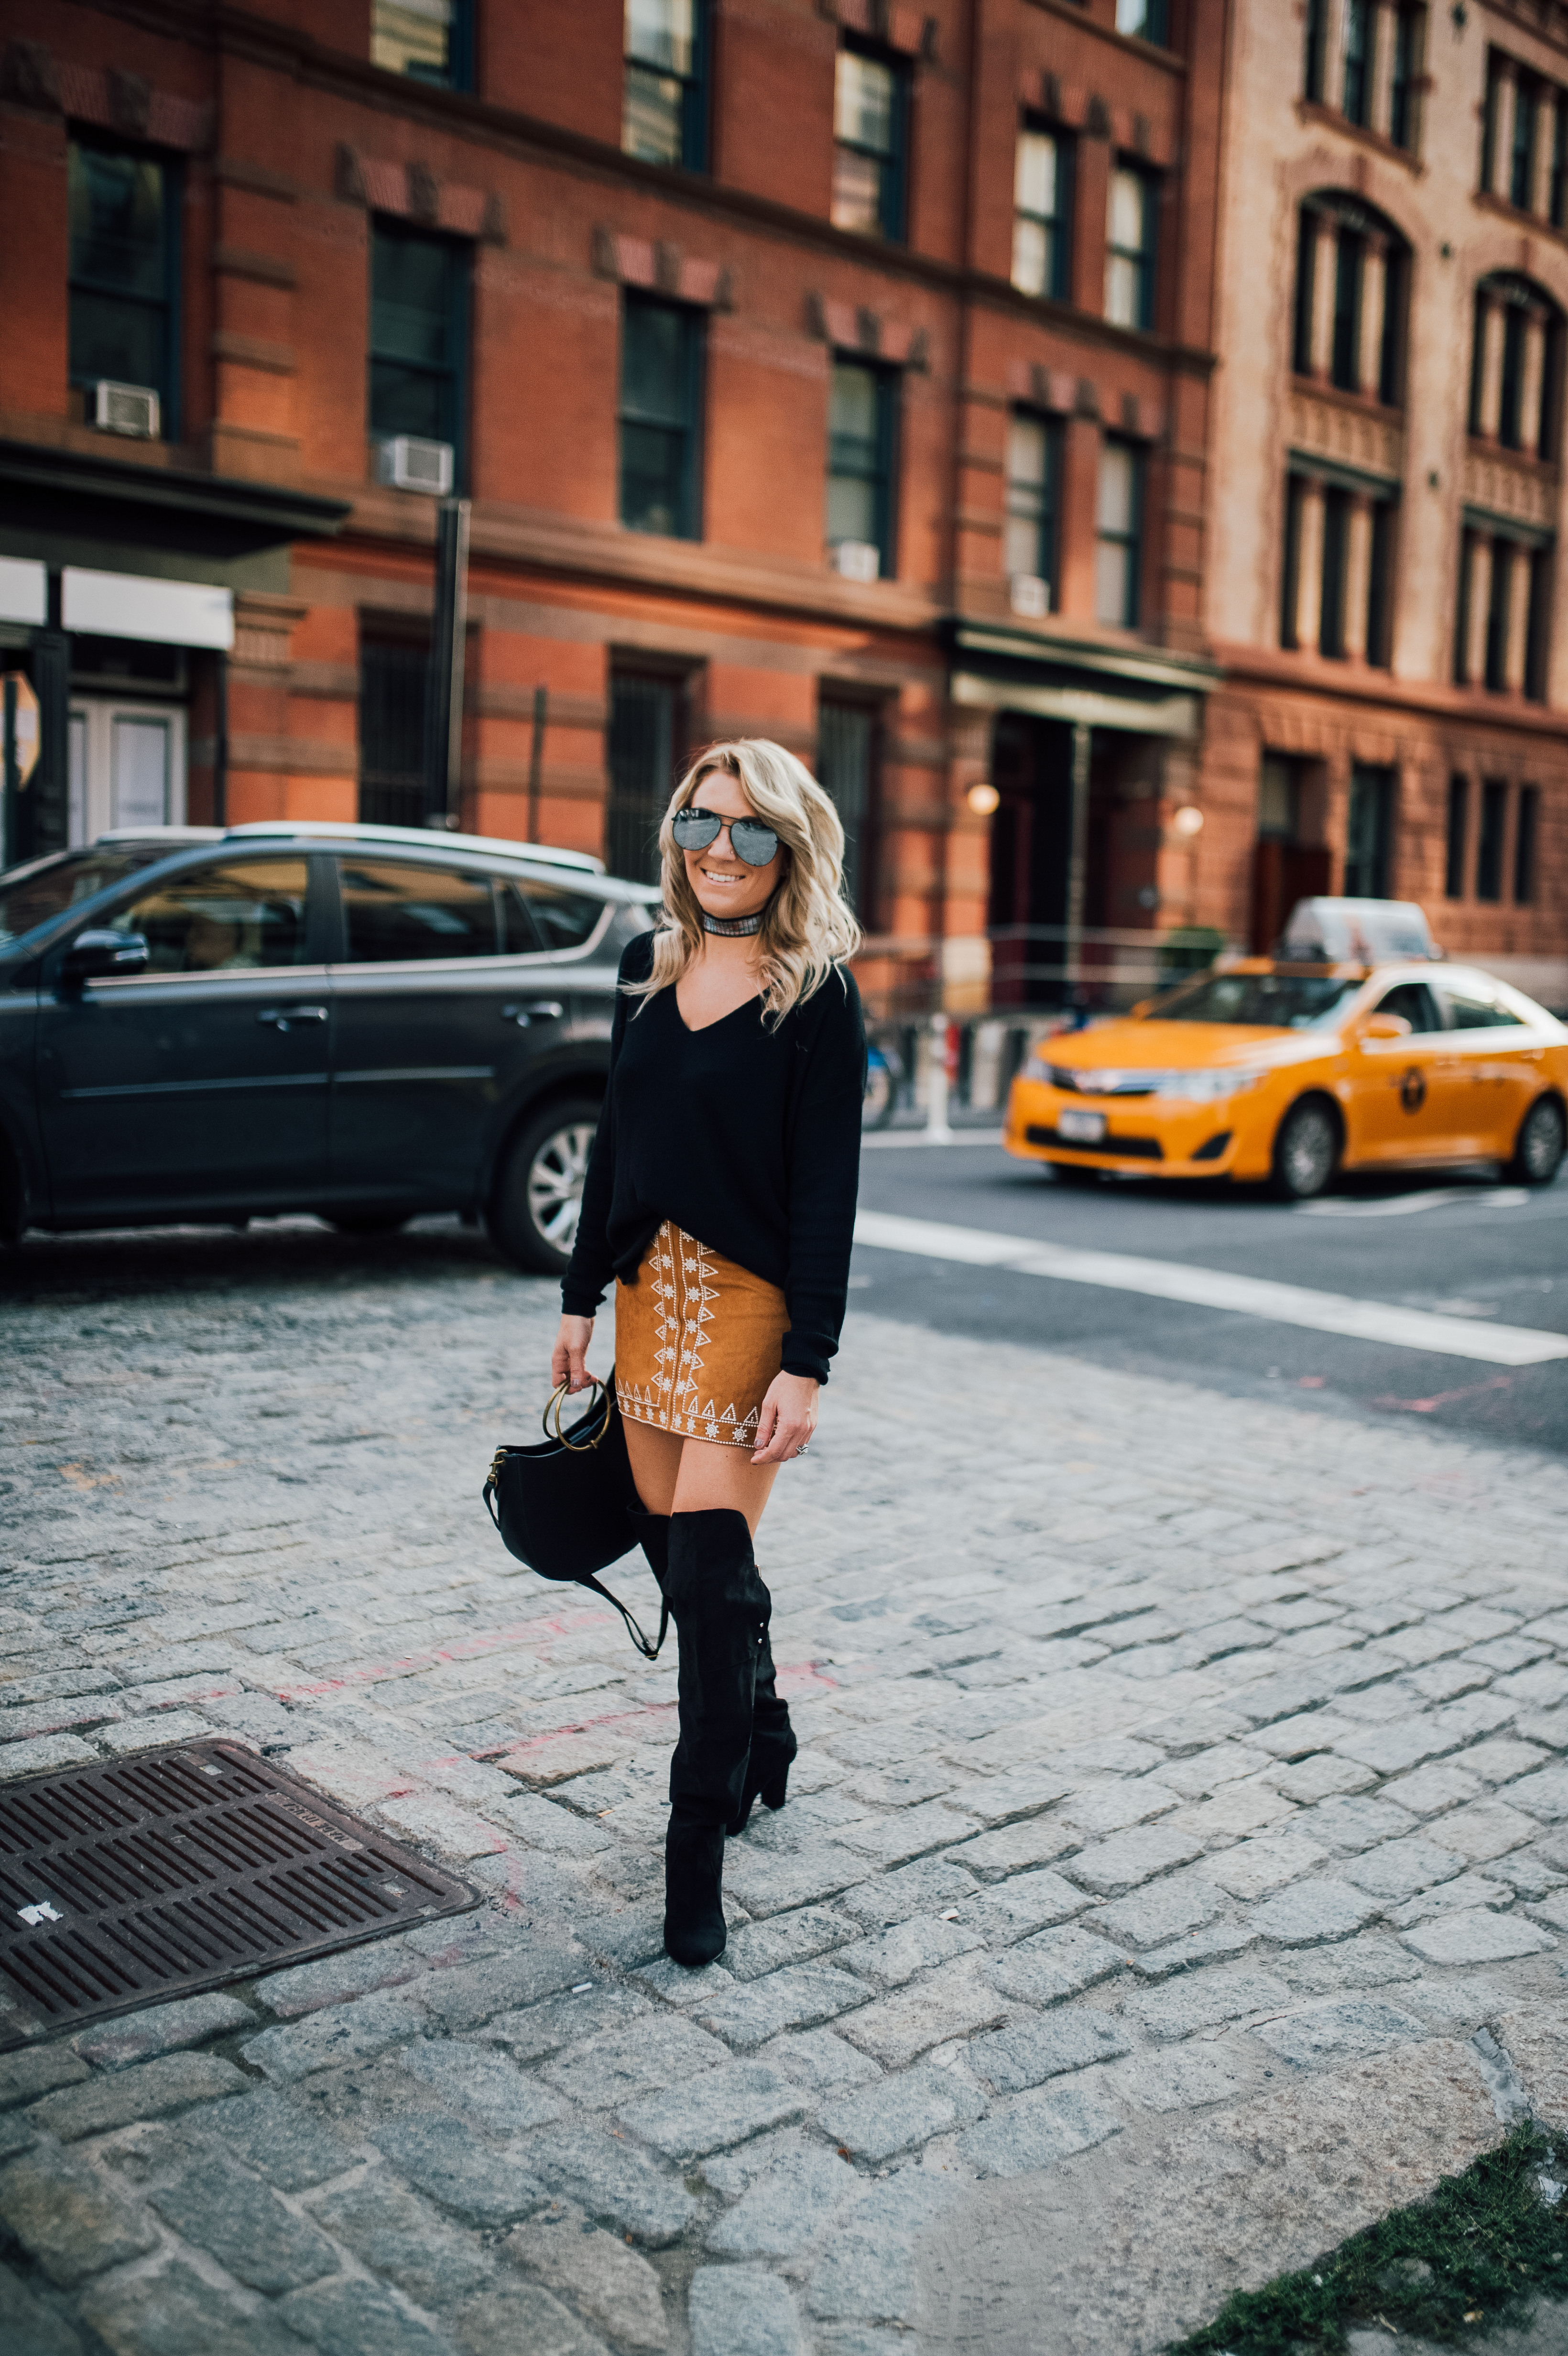 Is it your dream to attend NYFW? I'll answer everything you need to know on how to attend!